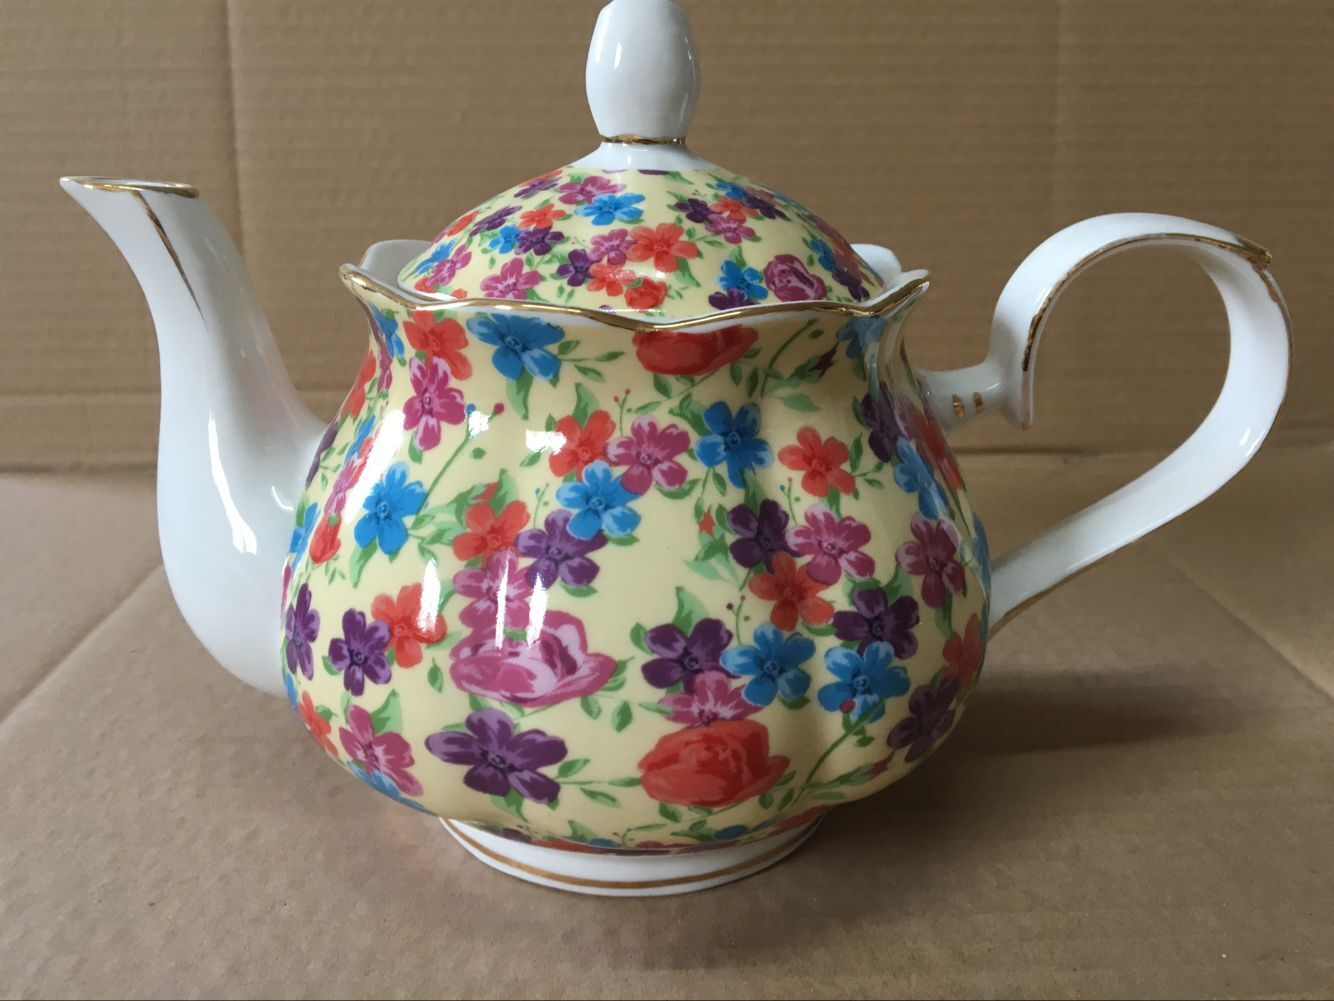 Cream Flower Garden 4 cup teapot